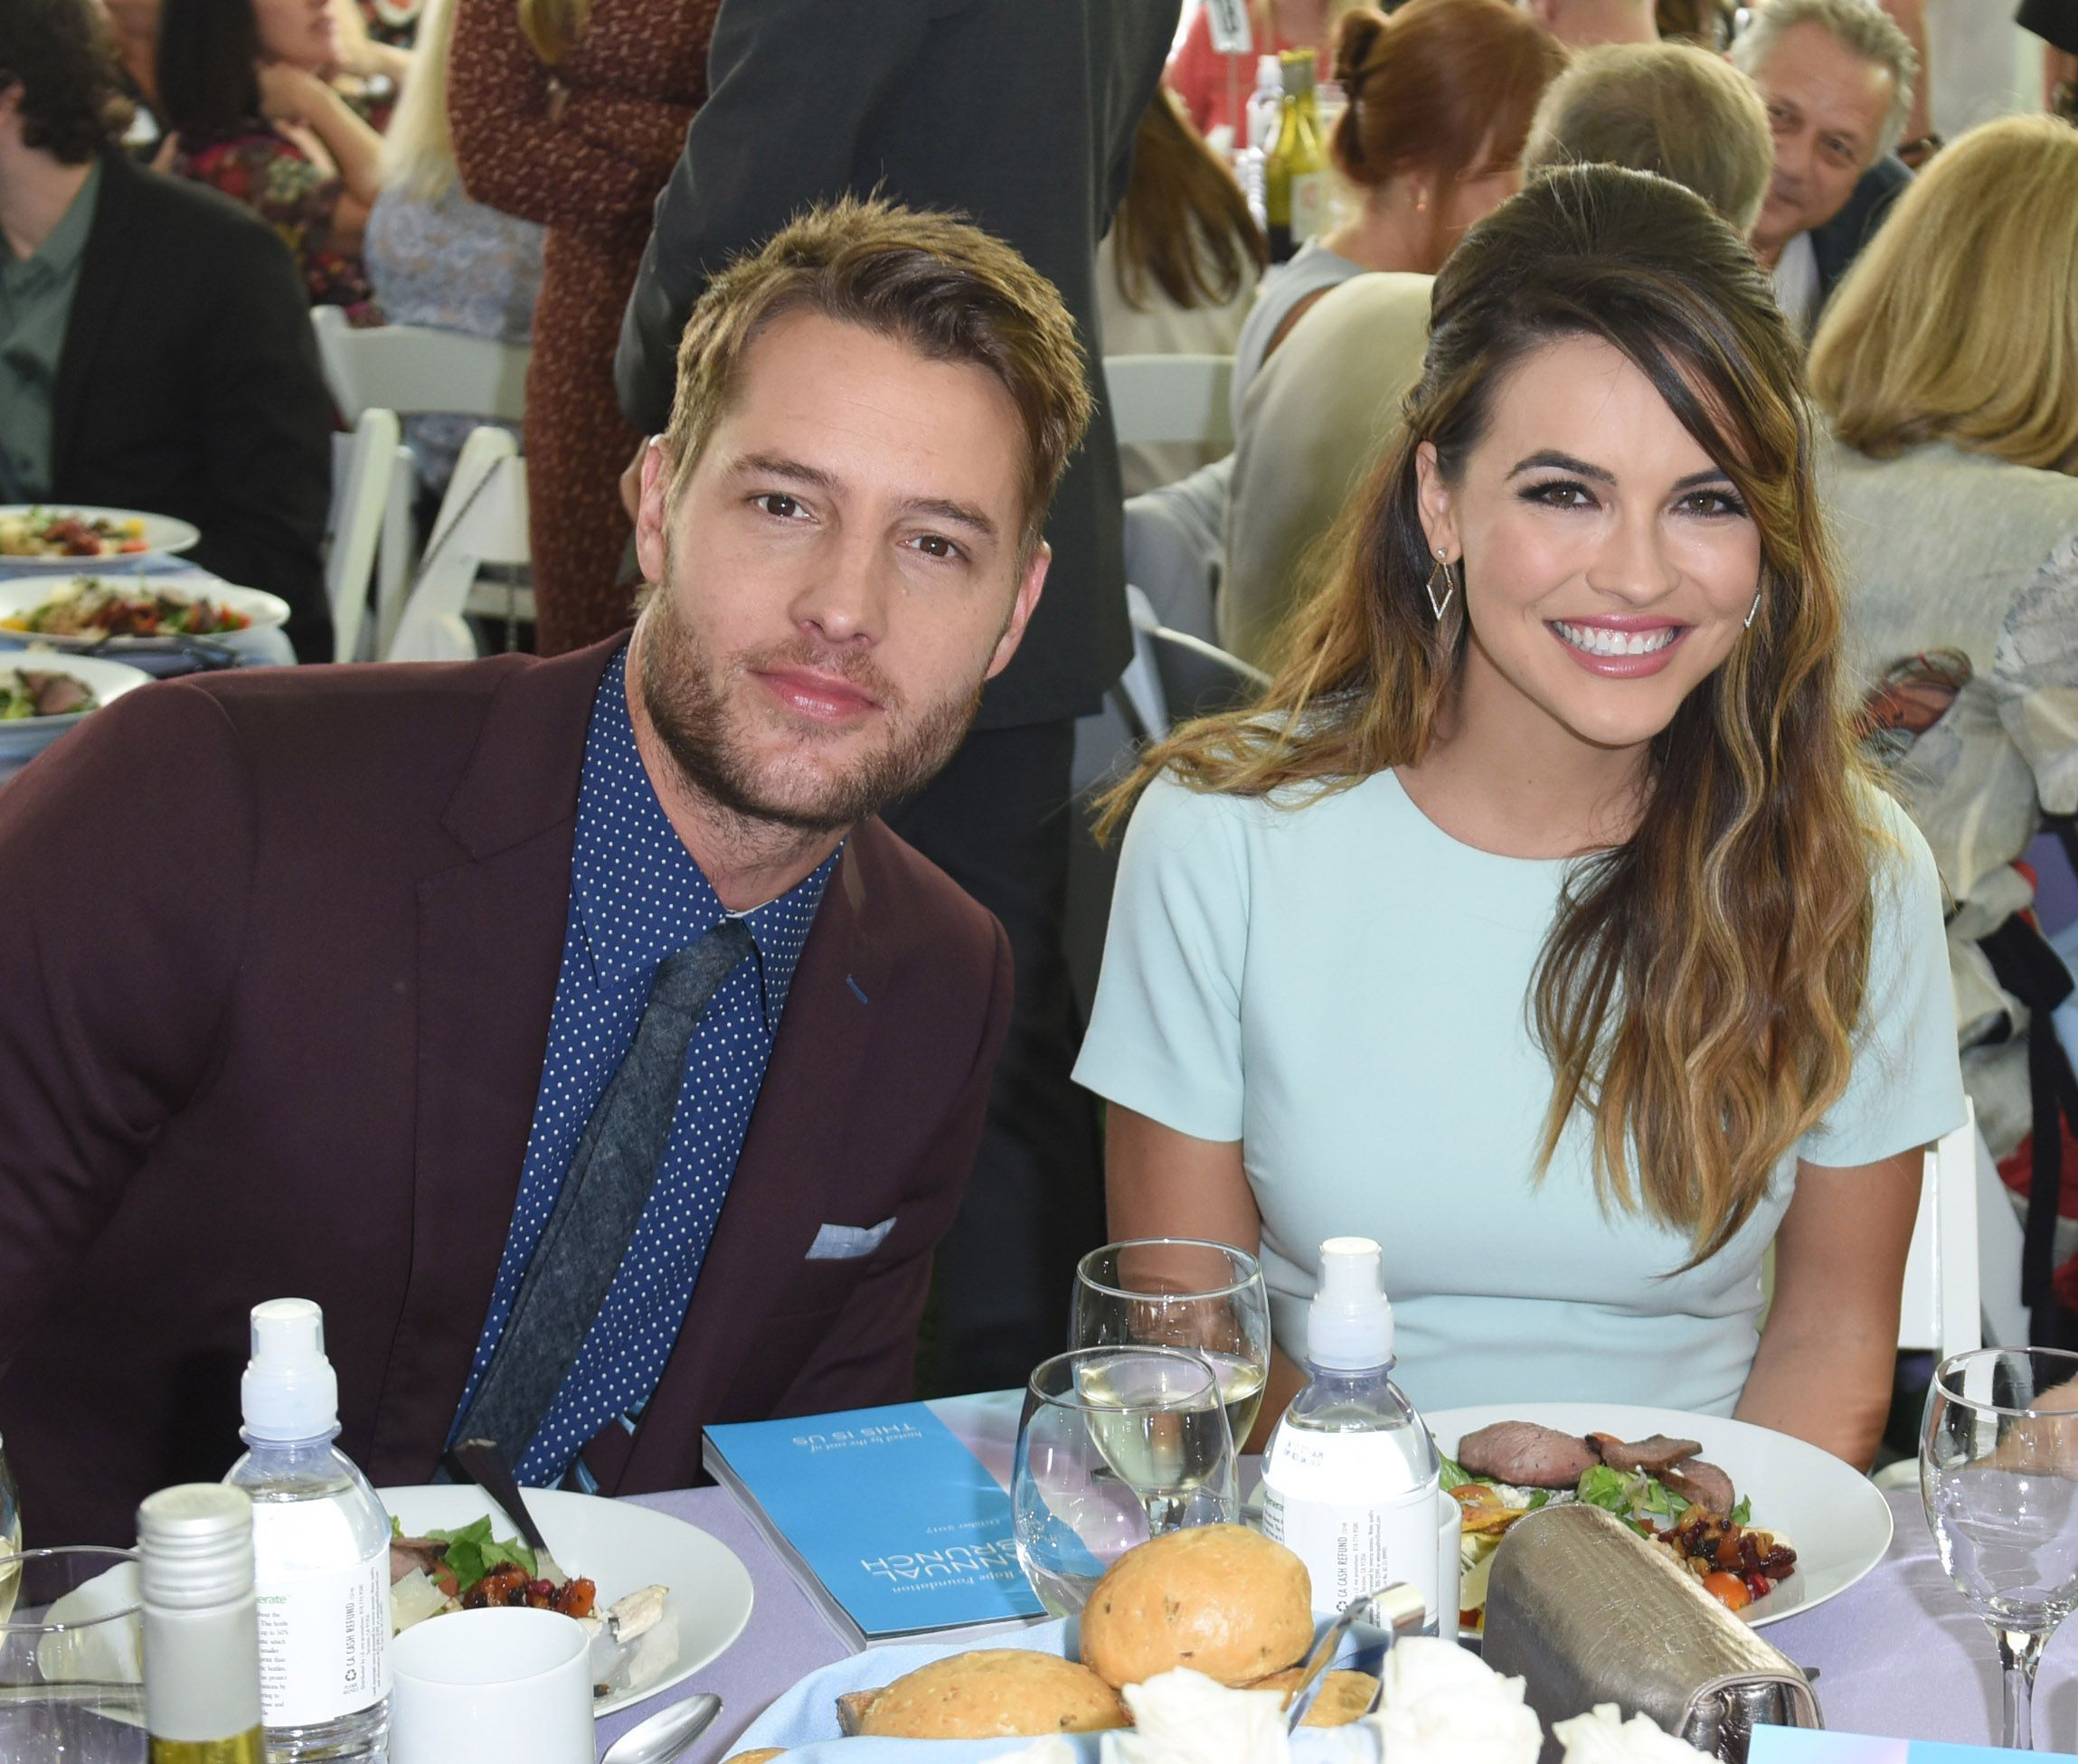 Justin Hartley and Chrishell Stause at The Rape Foundation's Annual Brunch on October 8, 2017 in Beverly Hills, California | Photo: Getty Images